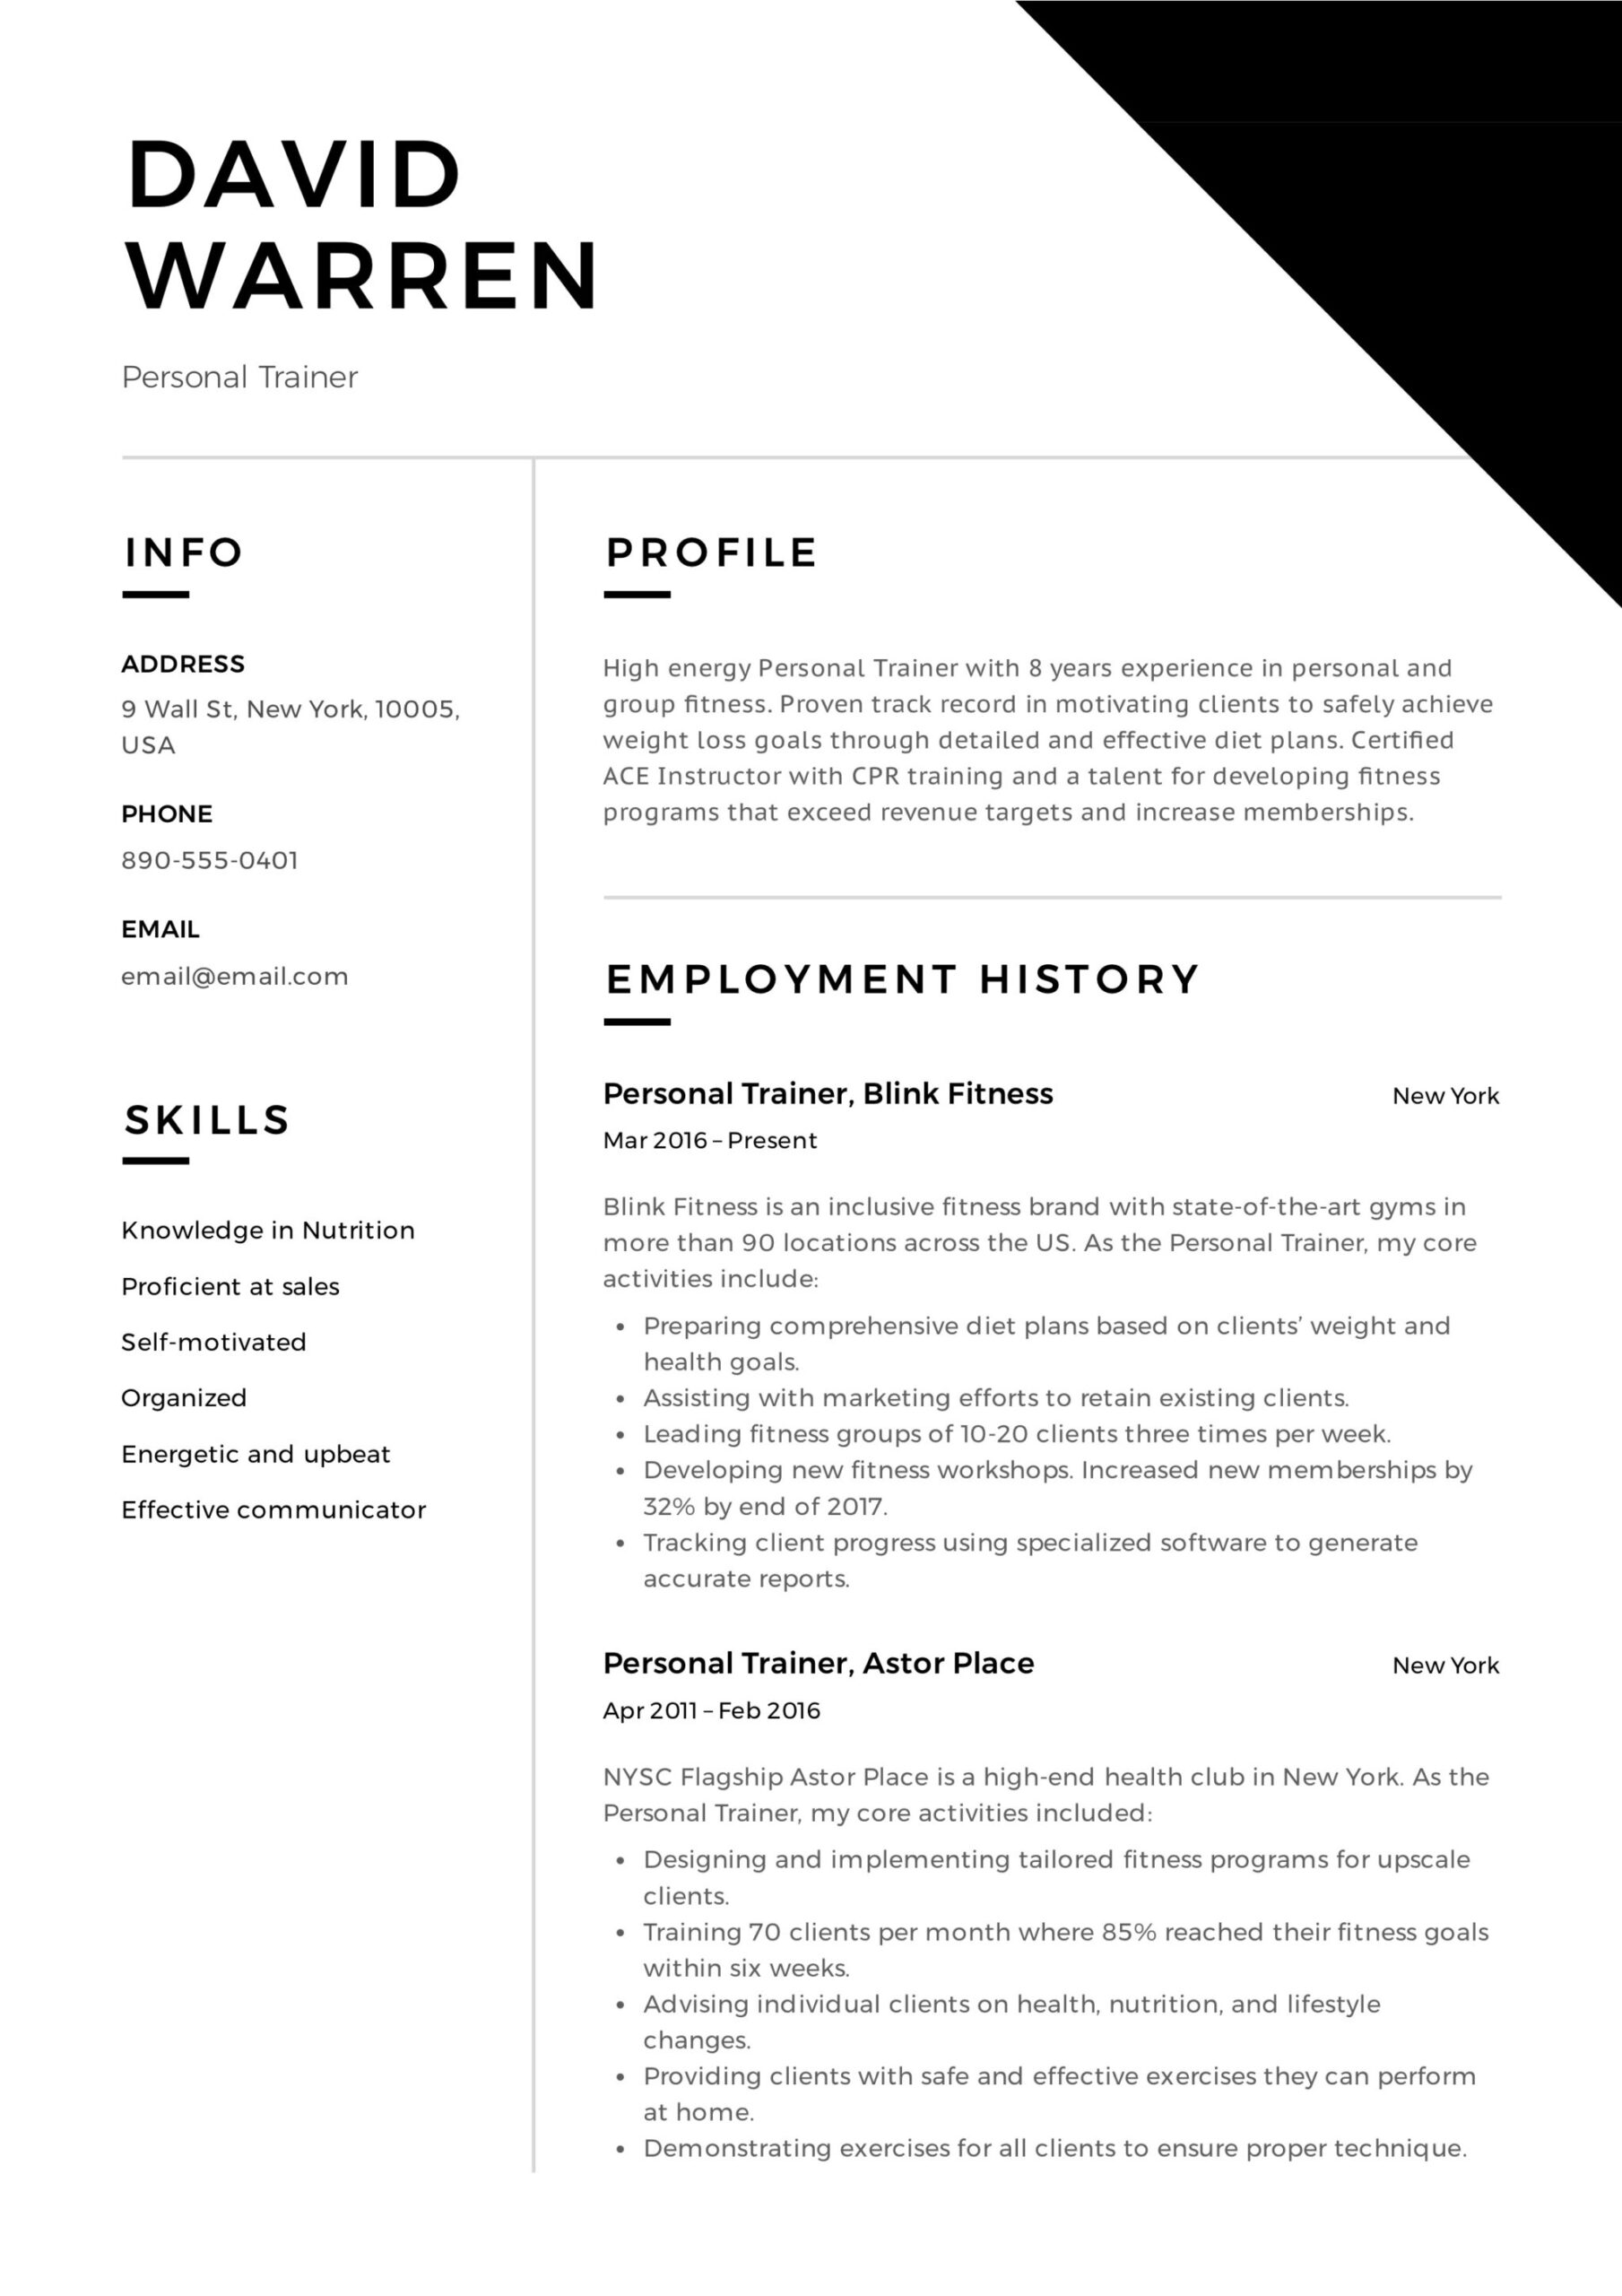 personal trainer resume guide examples pdf objective for gym job sample trainer11 Resume Resume Objective For Gym Job